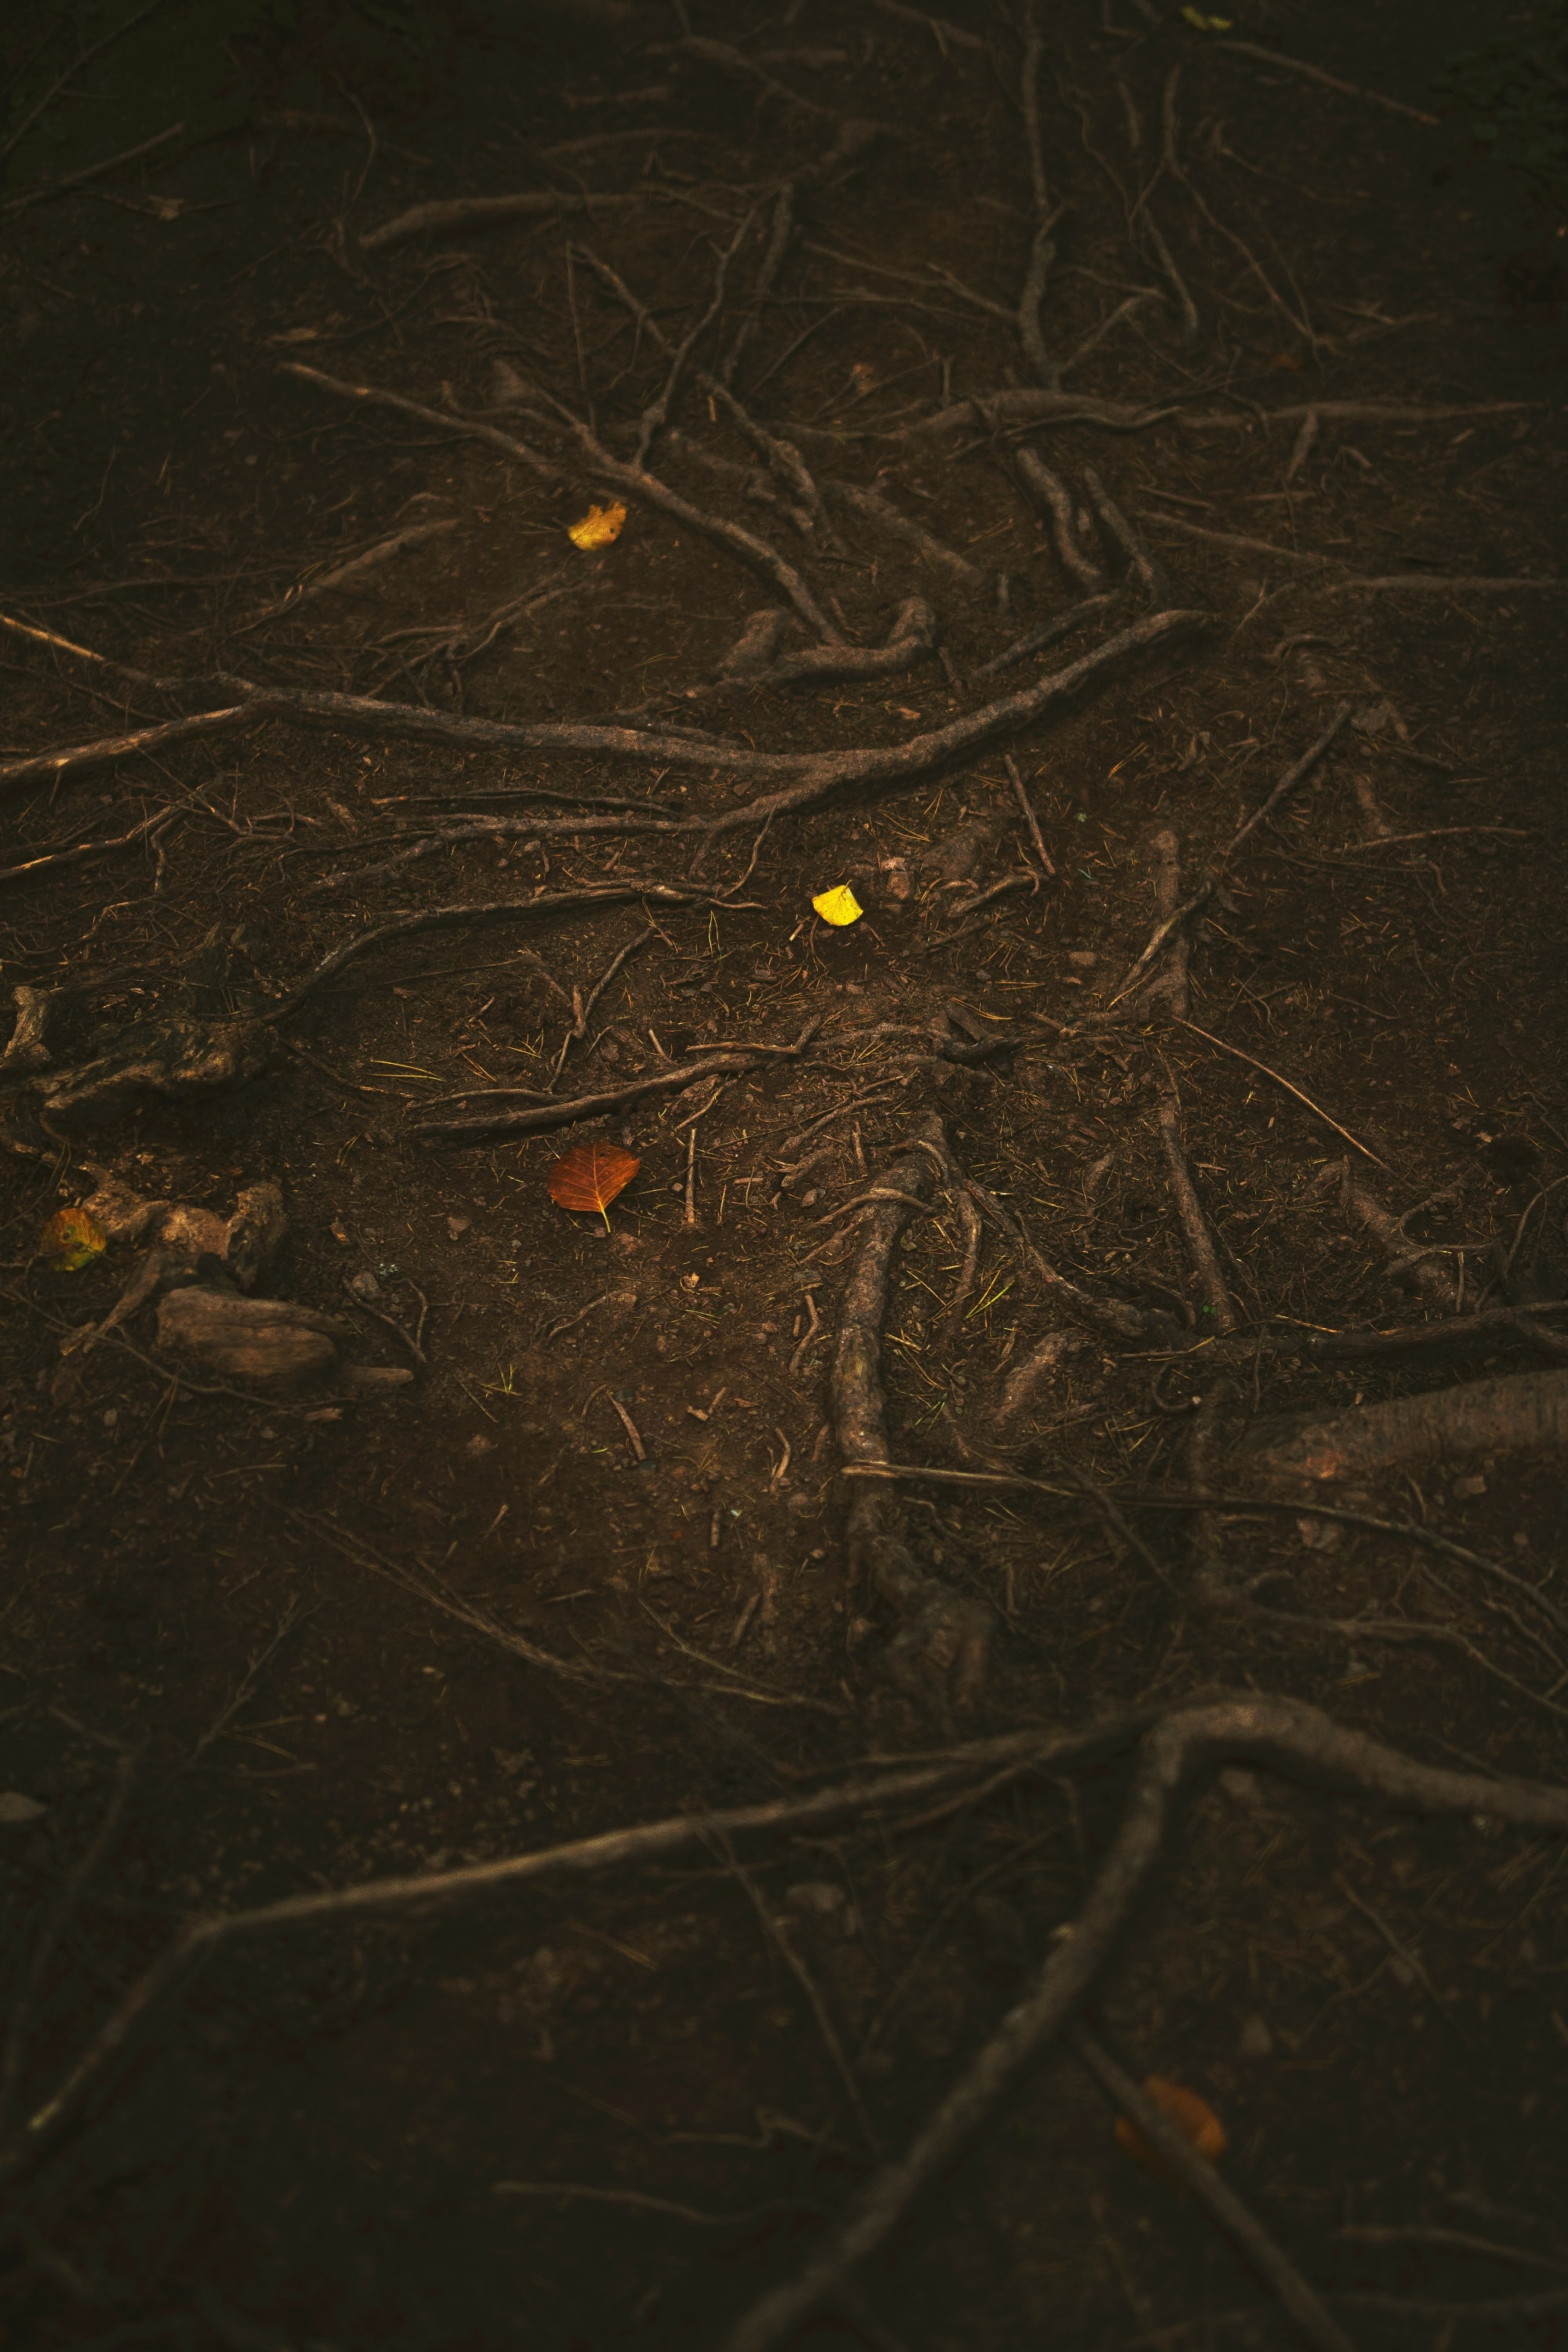 Bright autumn leaves on contrasting brown ground with tangled tree roots